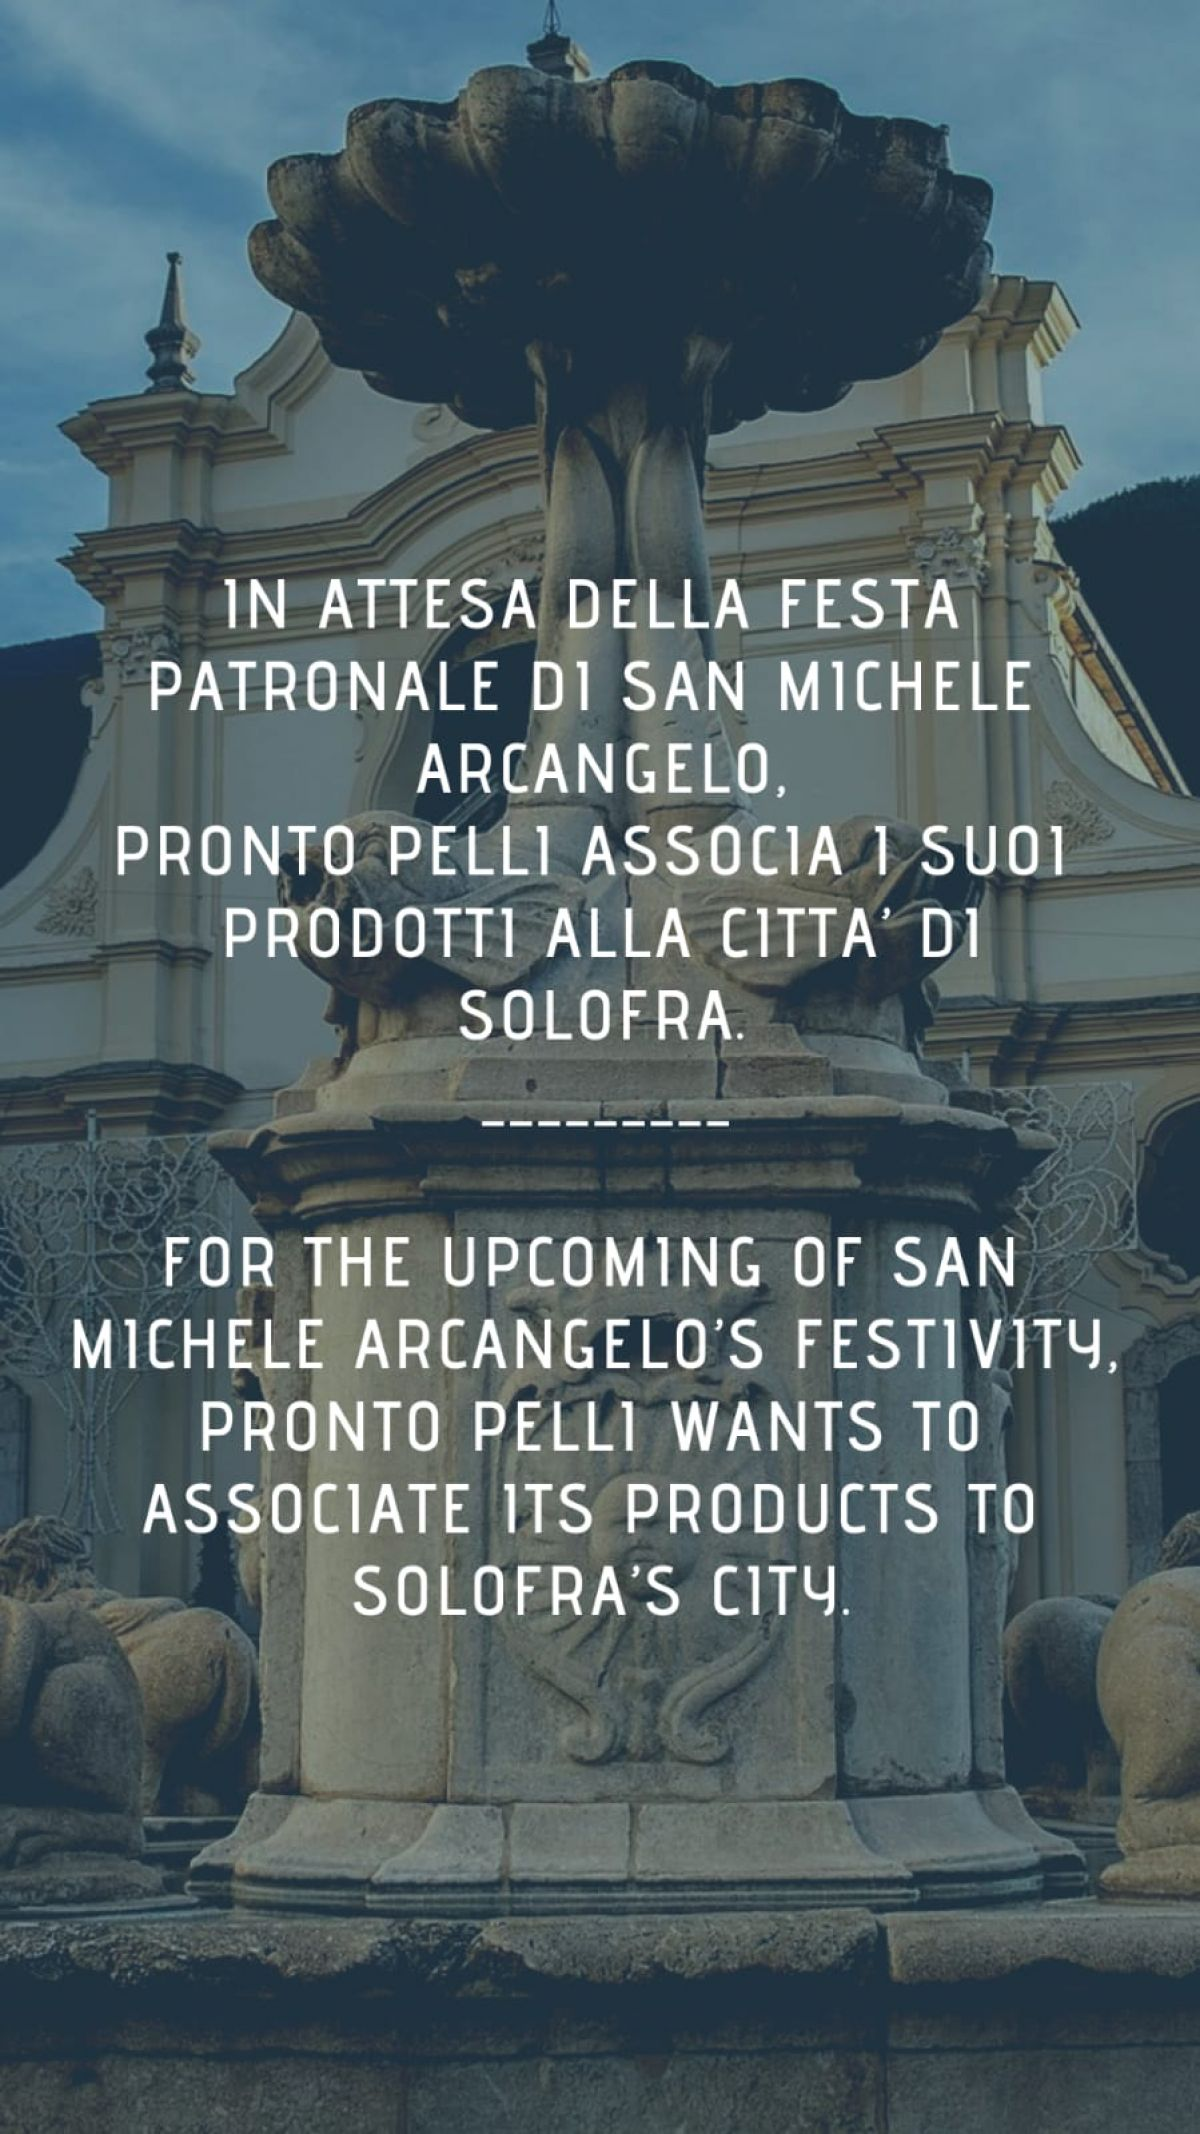 Pronto Pelli wants to honor our city